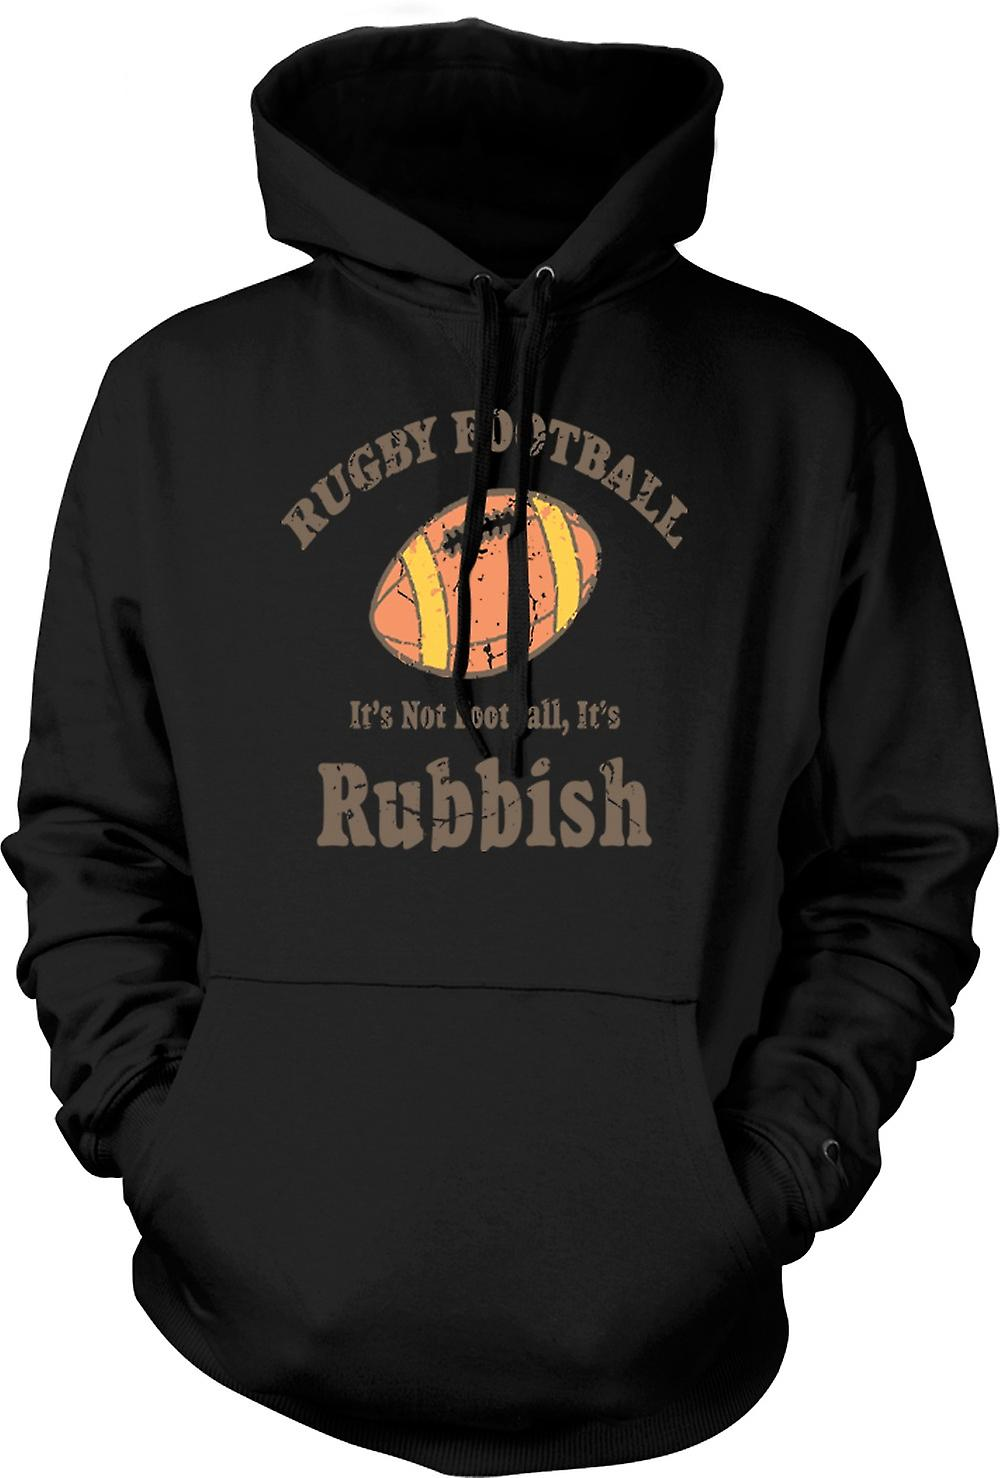 Kids Hoodie - Rugby Football Rubbish - Funny